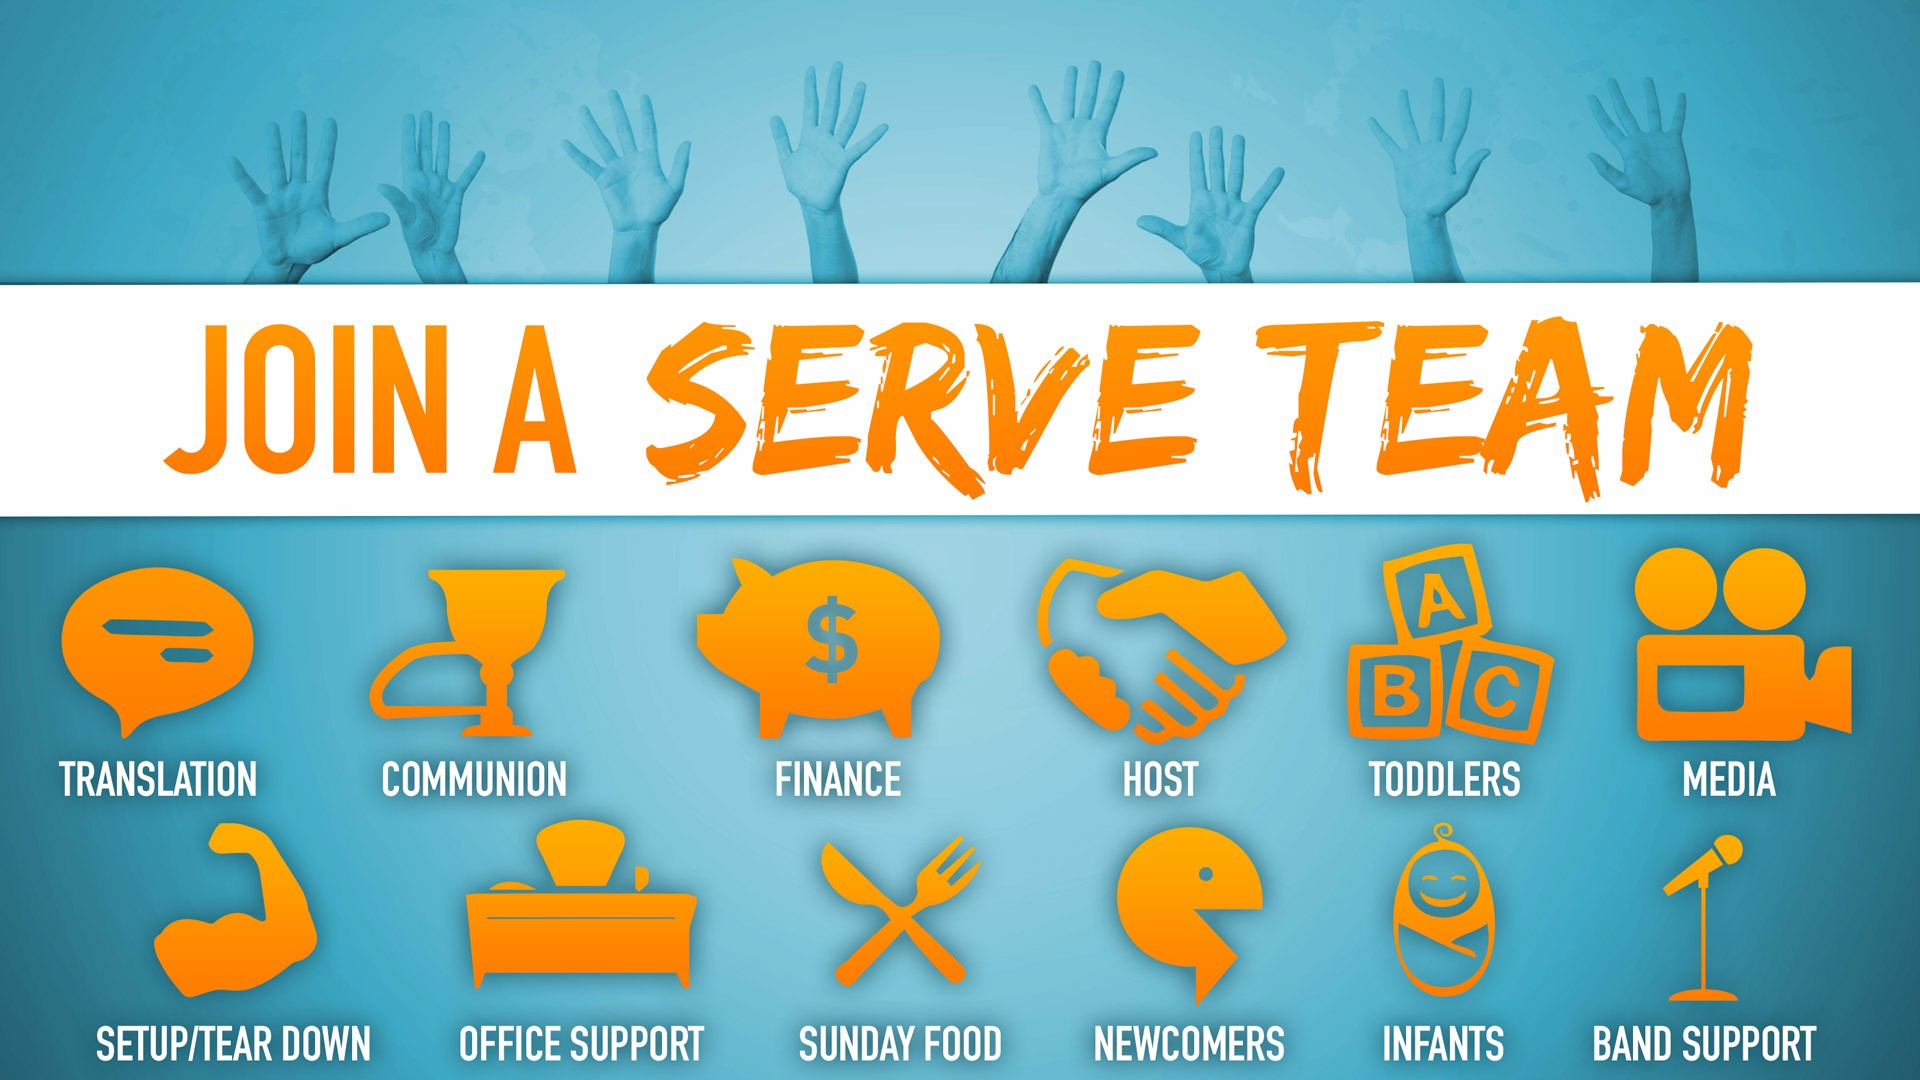 Join a Serve Team